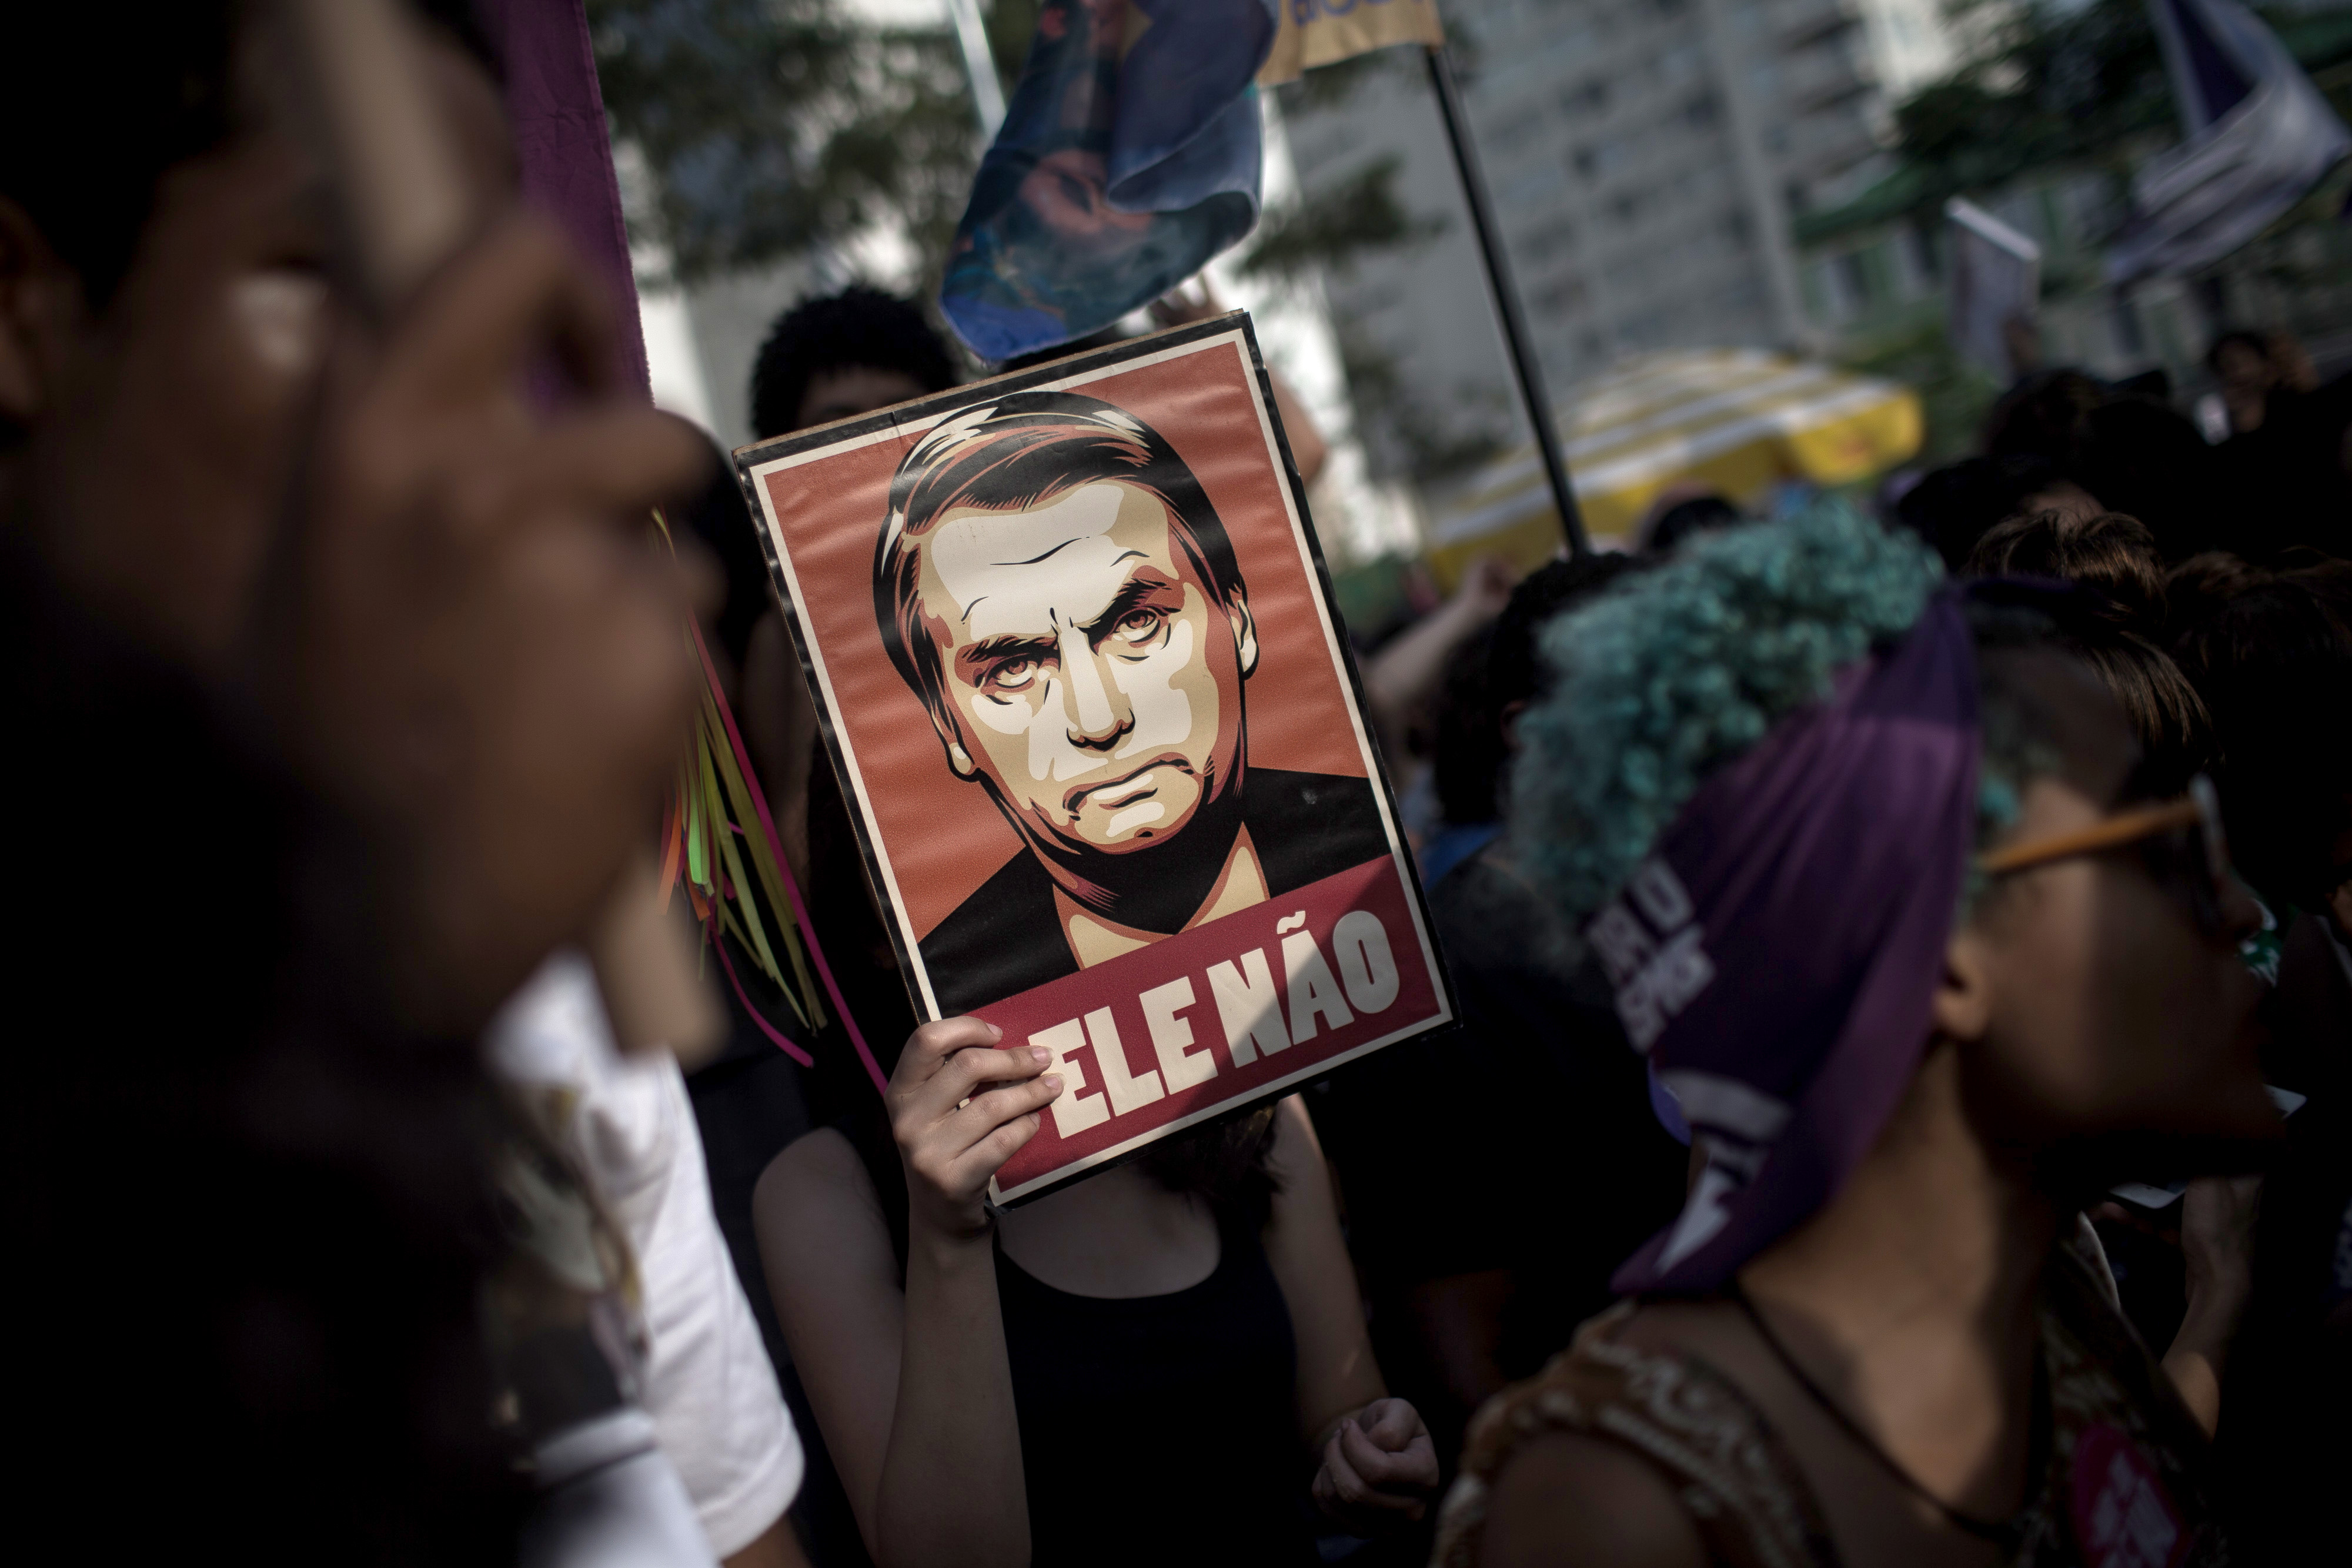 In Brazil, Bolsonaro Supporter Carved a Swastika on a Young Woman's Skin Because of Her #EleNao Tee